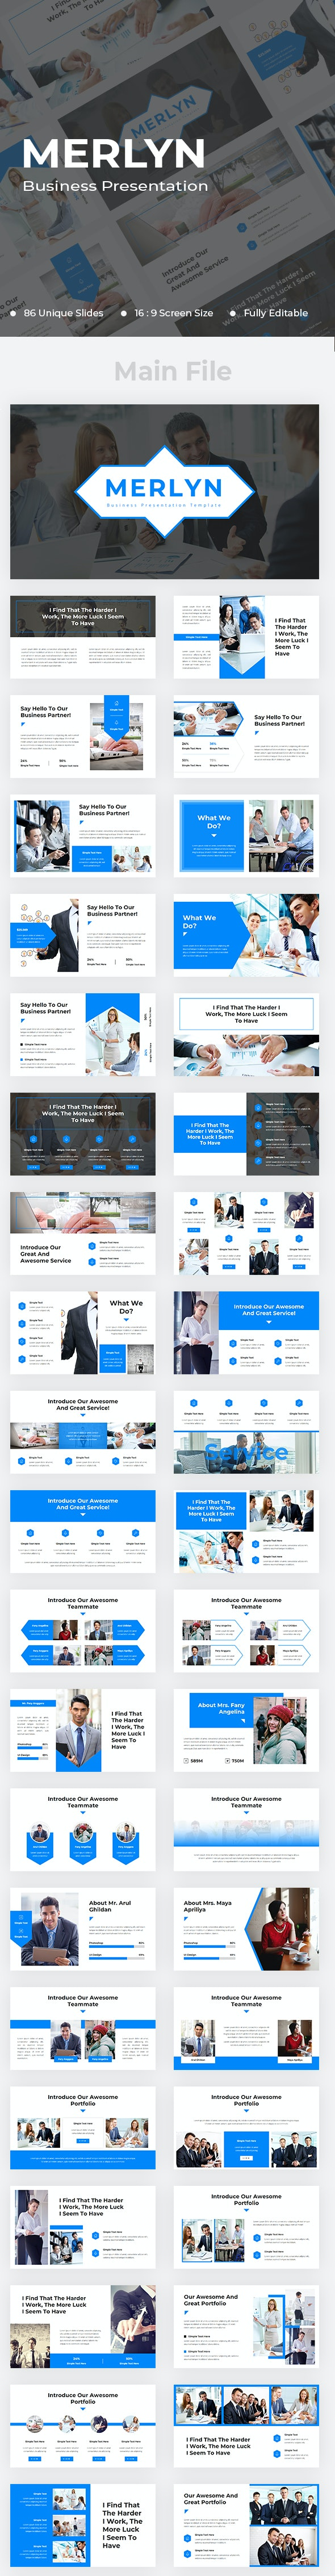 Merlyn Business PowerPoint - Business PowerPoint Templates